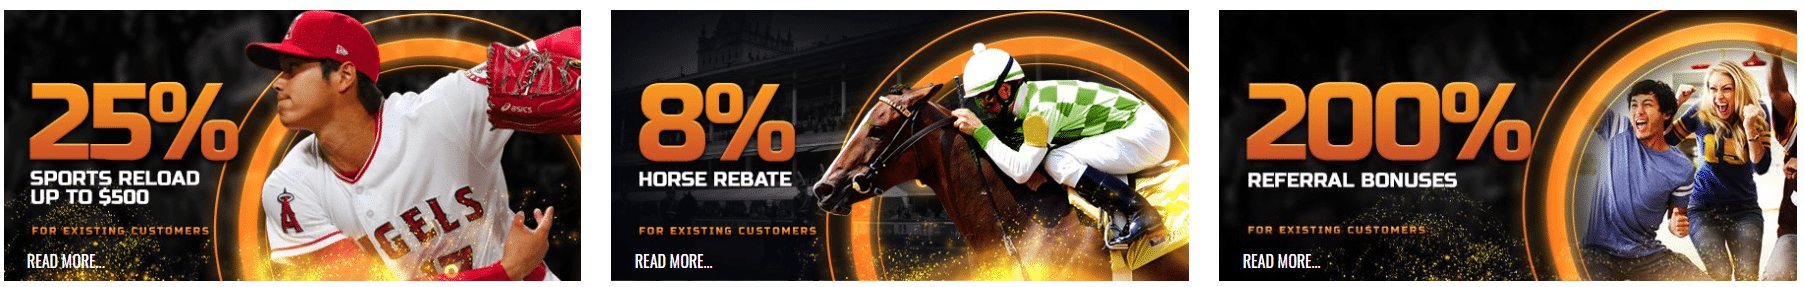 MyBookie Promo Code for Sports